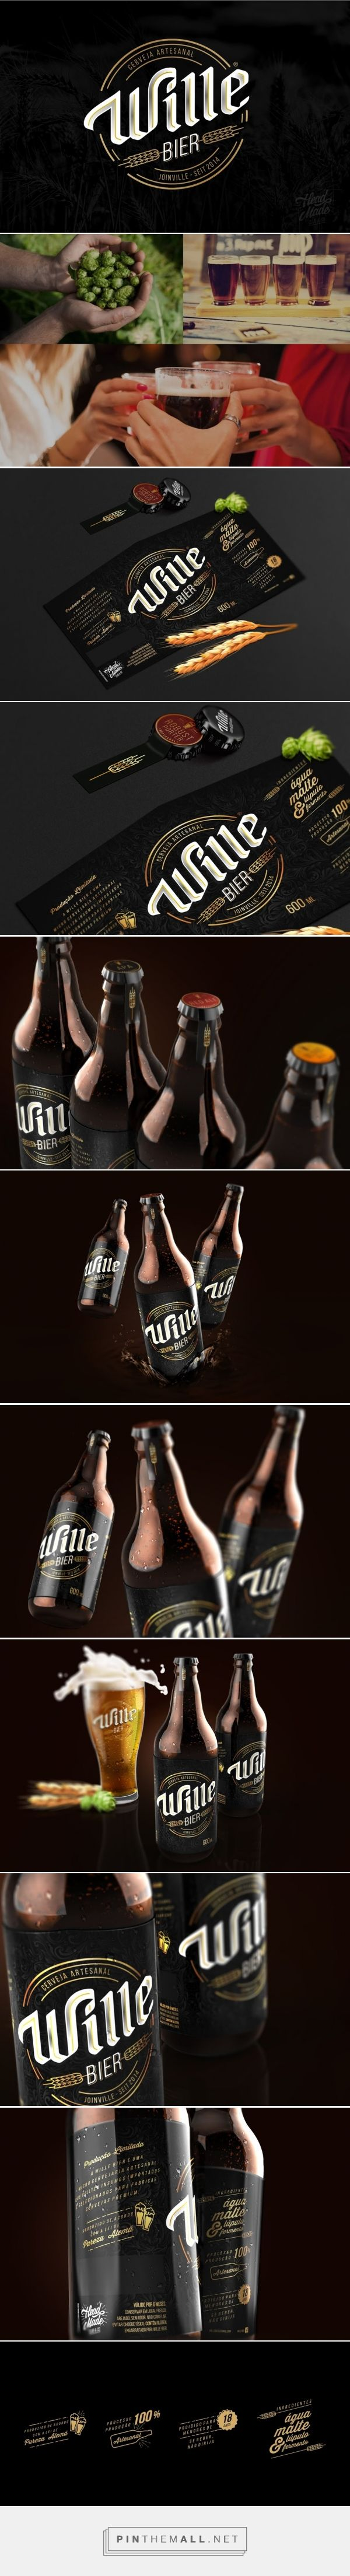 Wille Bier - Packaging of the World - Creative Package Design Gallery - http://www.packagingoftheworld.com/2016/06/wille-bier.html